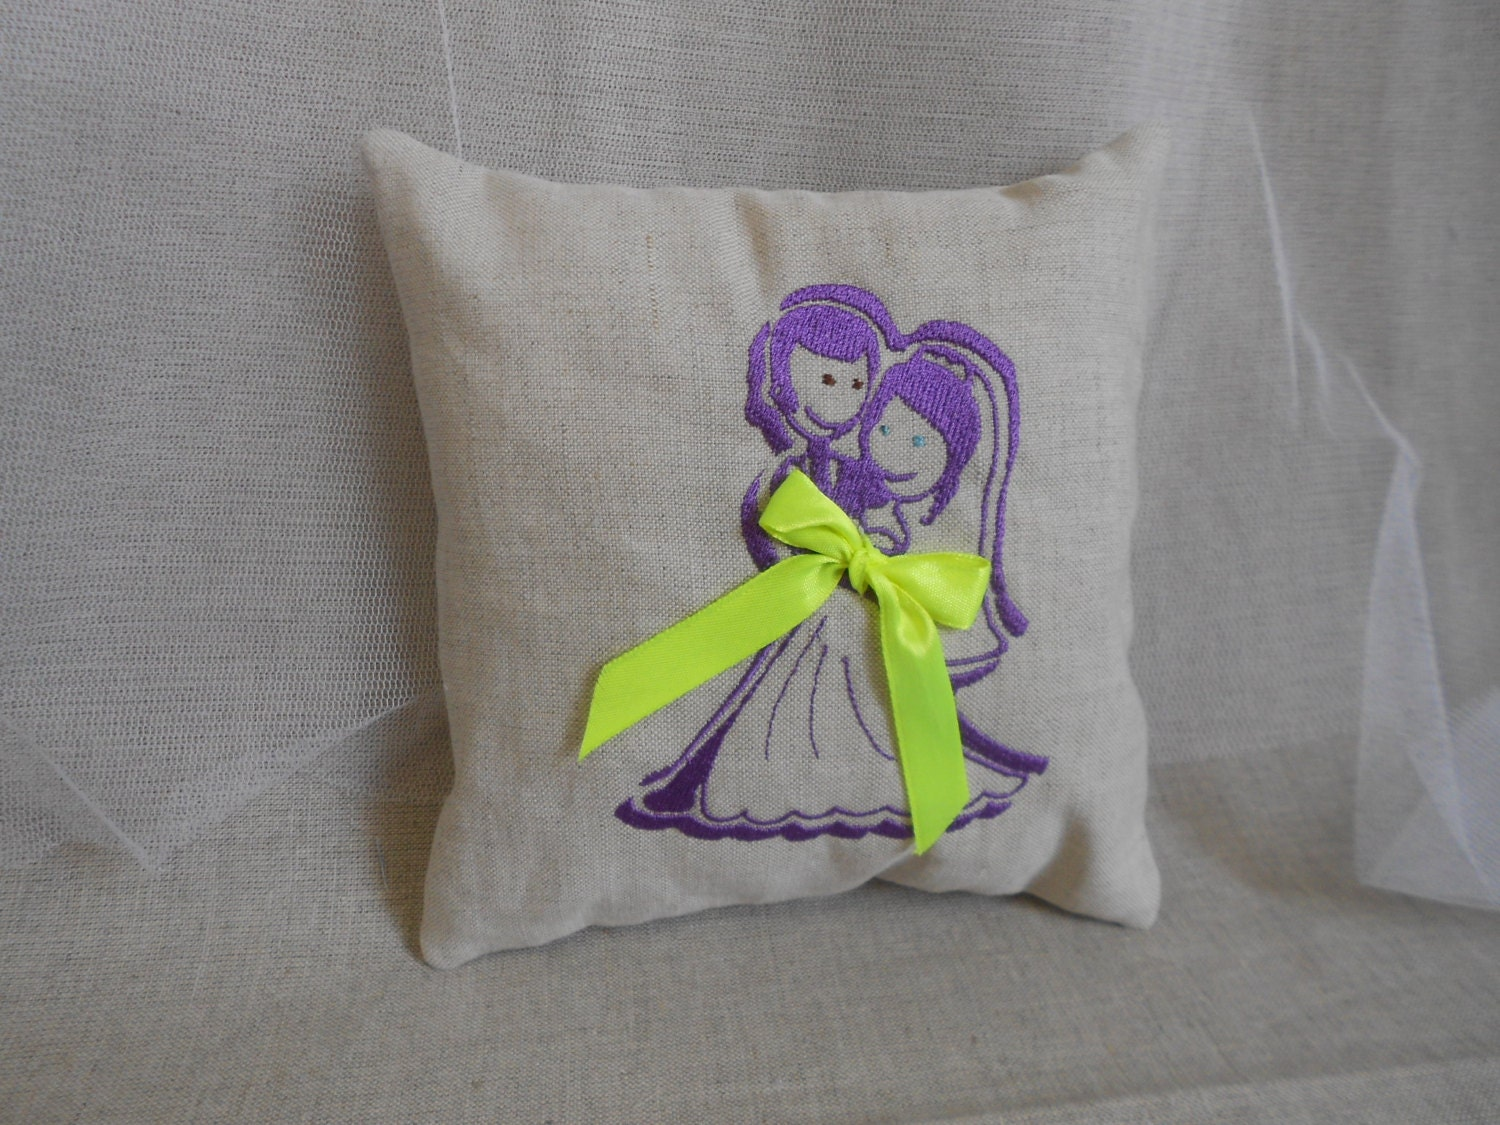 Wedding ring bearer pillow embroidered cushion